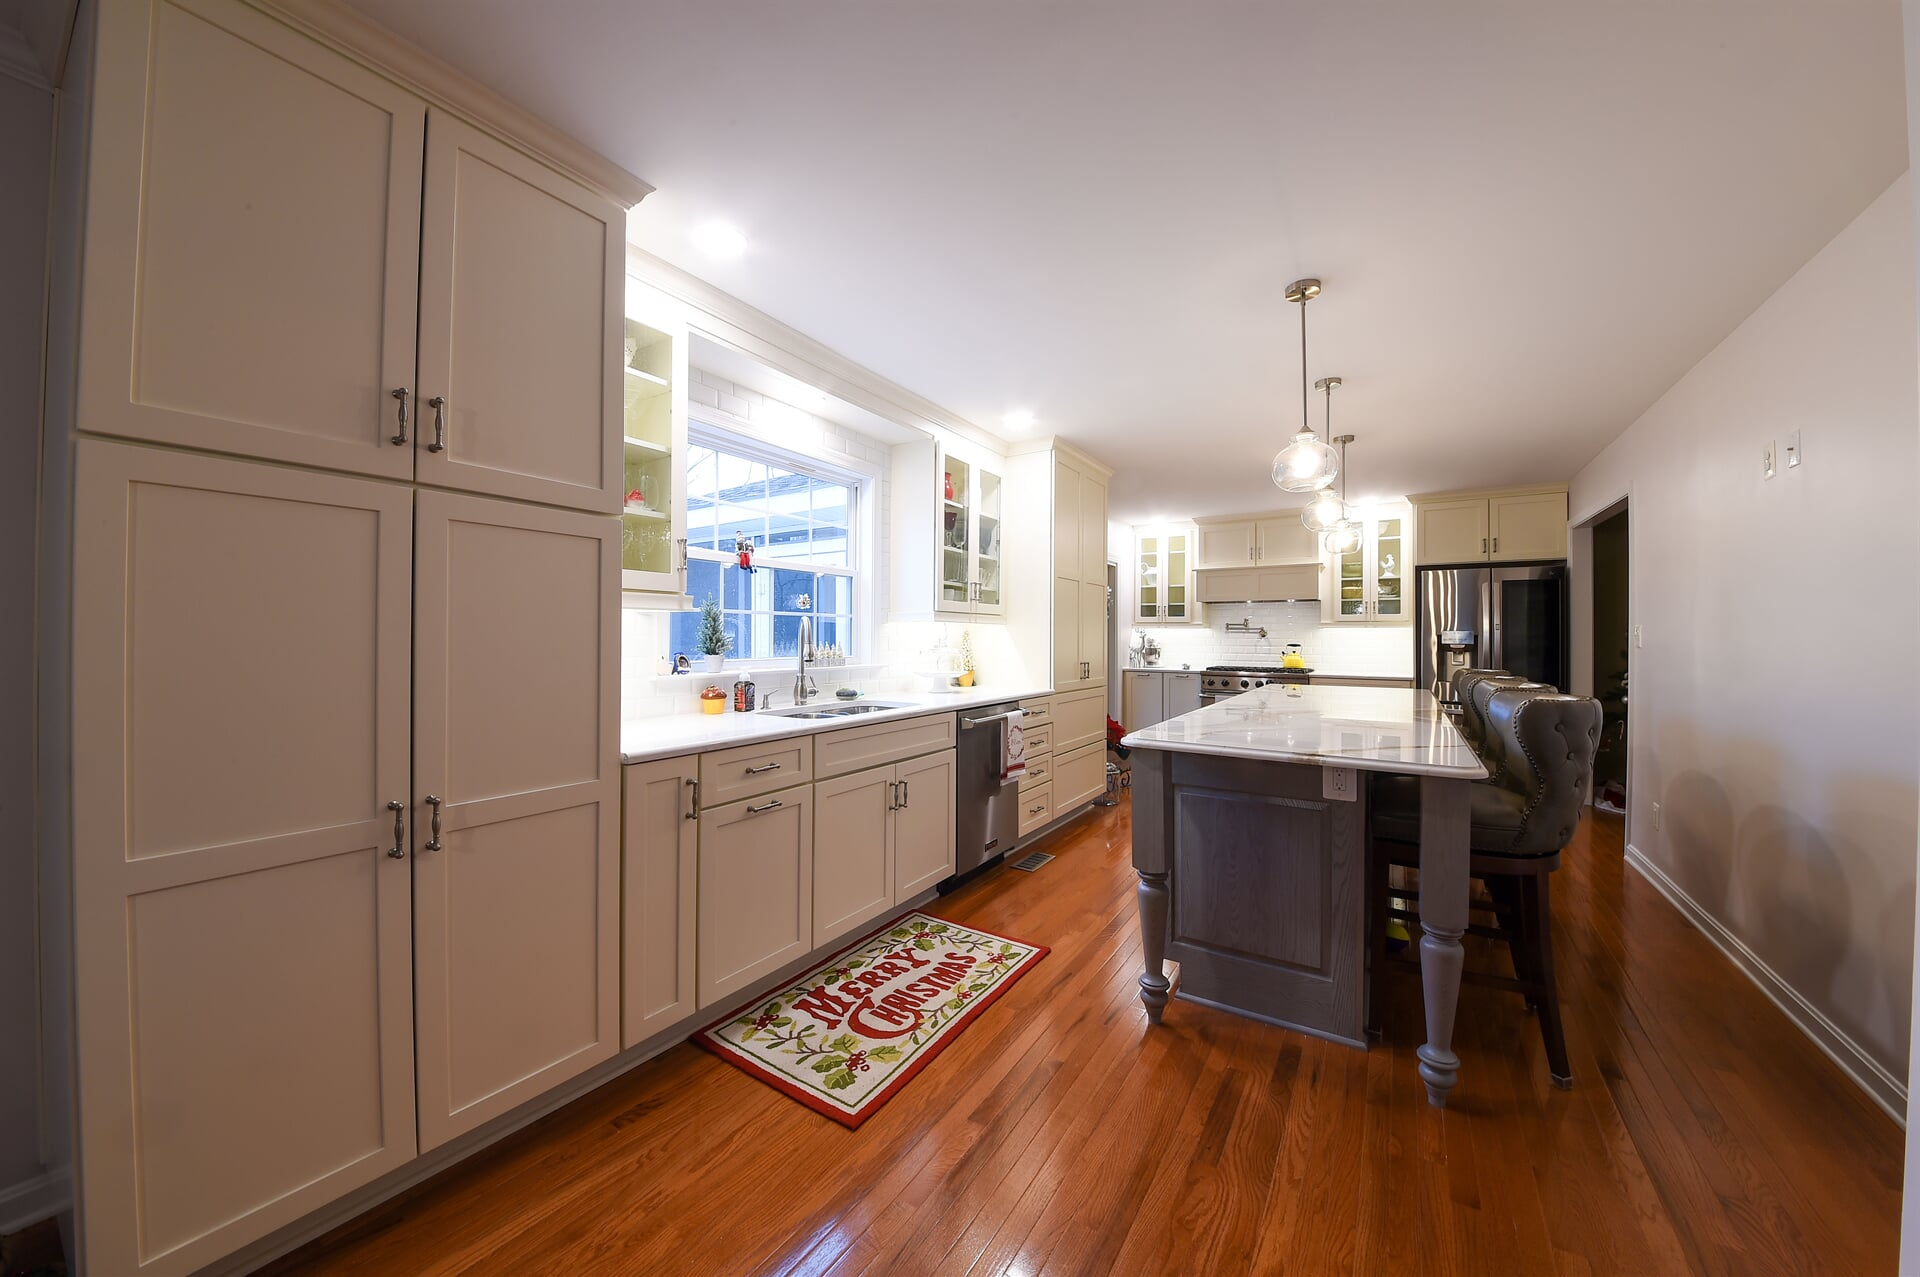 Kitchen remodeling in Hughesville, MD by Southern Maryland Kitchen Bath Floors & Design